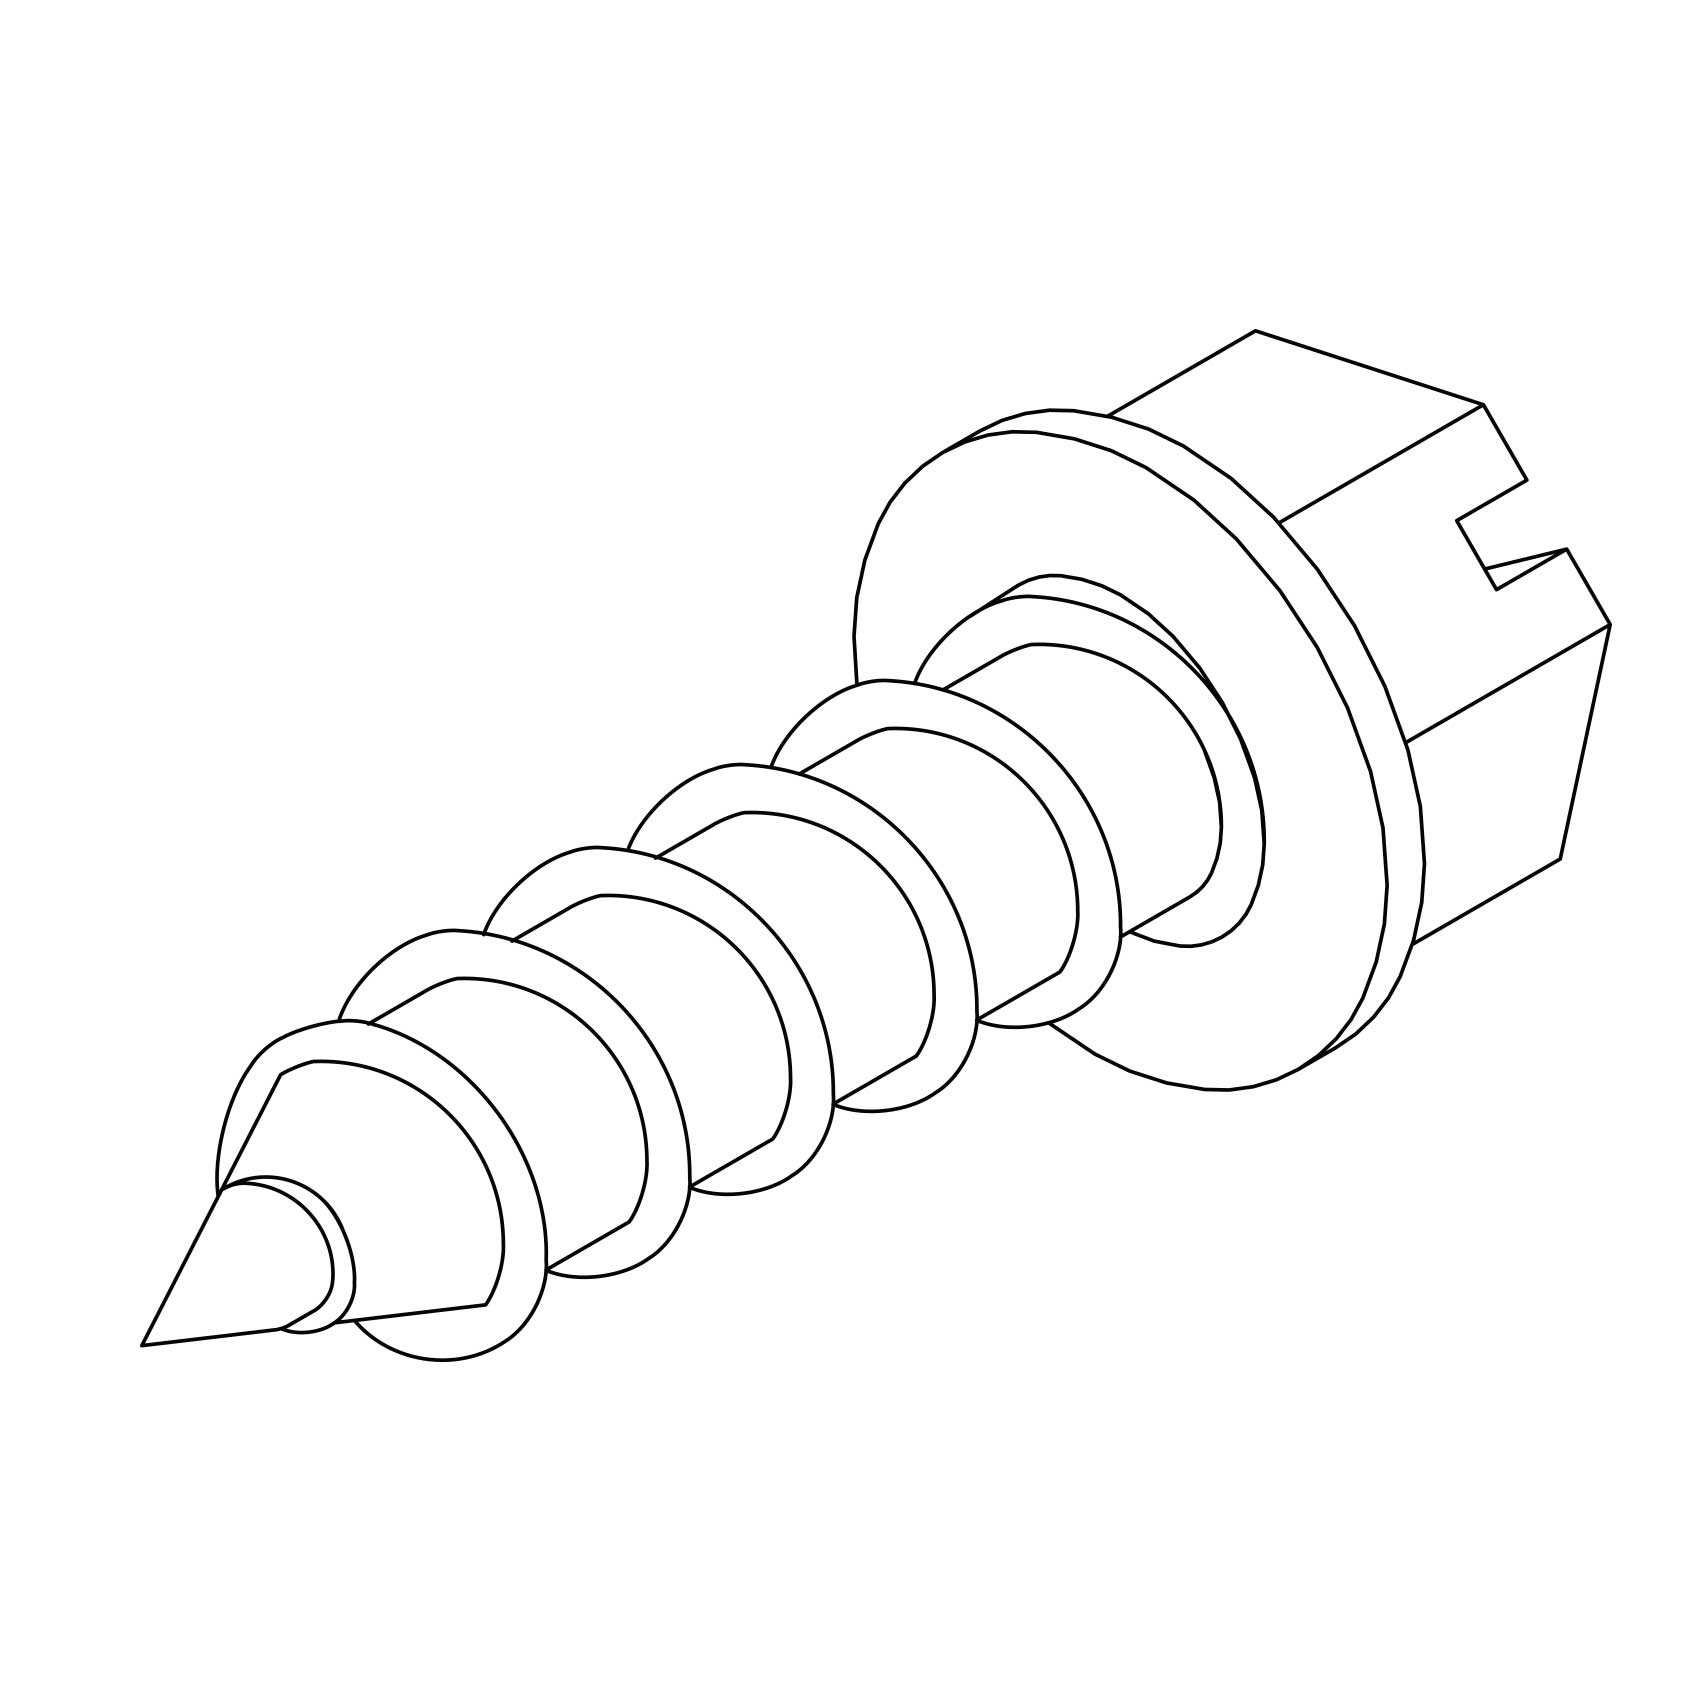 Self Forming Sheet Metal Screws For Lightning Protection Systems